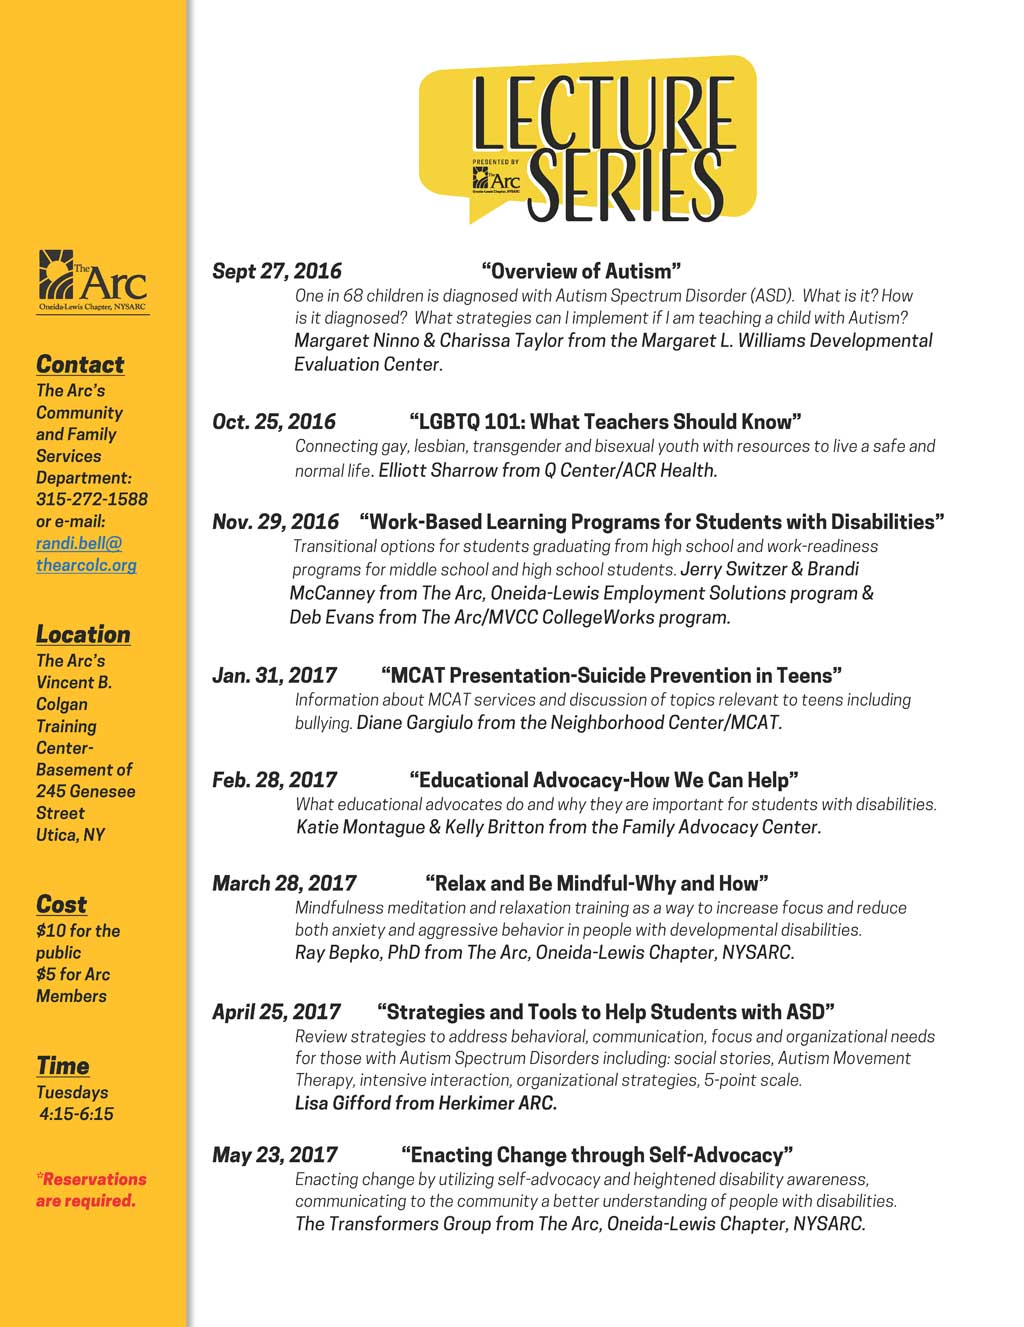 Arc-Lecture-Series-Schedule-2016-17